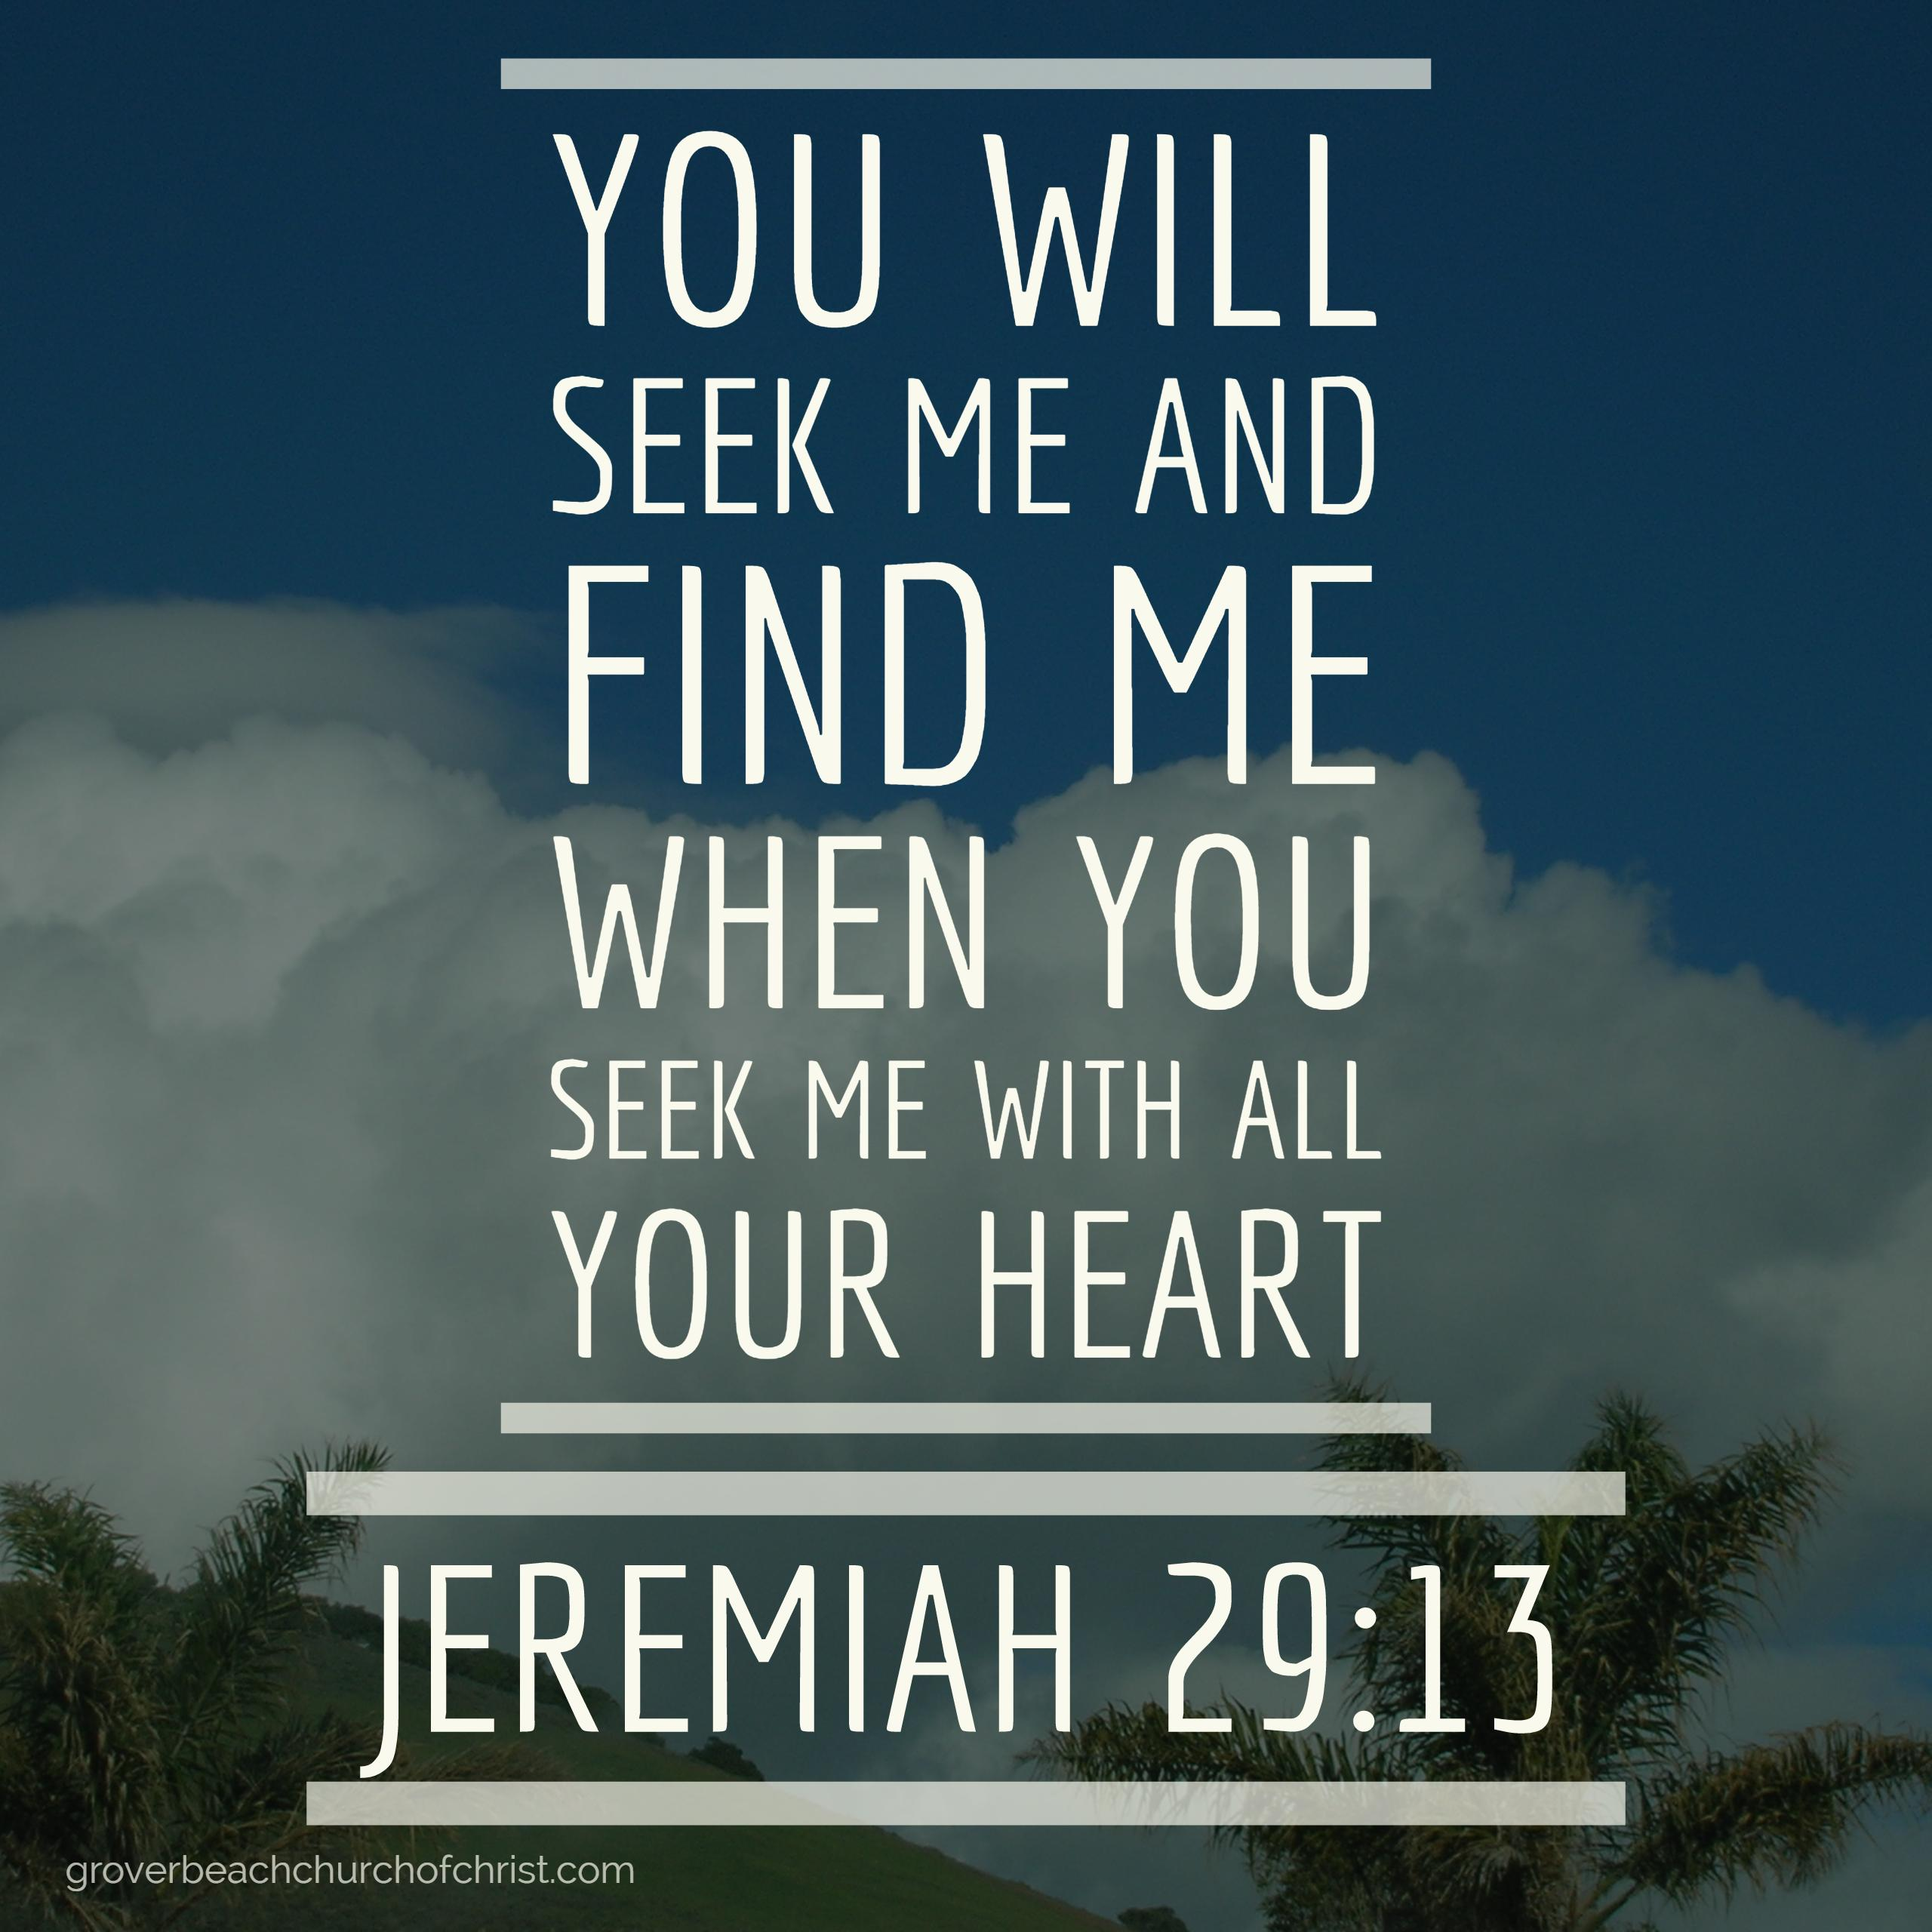 Jeremiah 29:13 You will seek me and find me when you seek me with all your heart